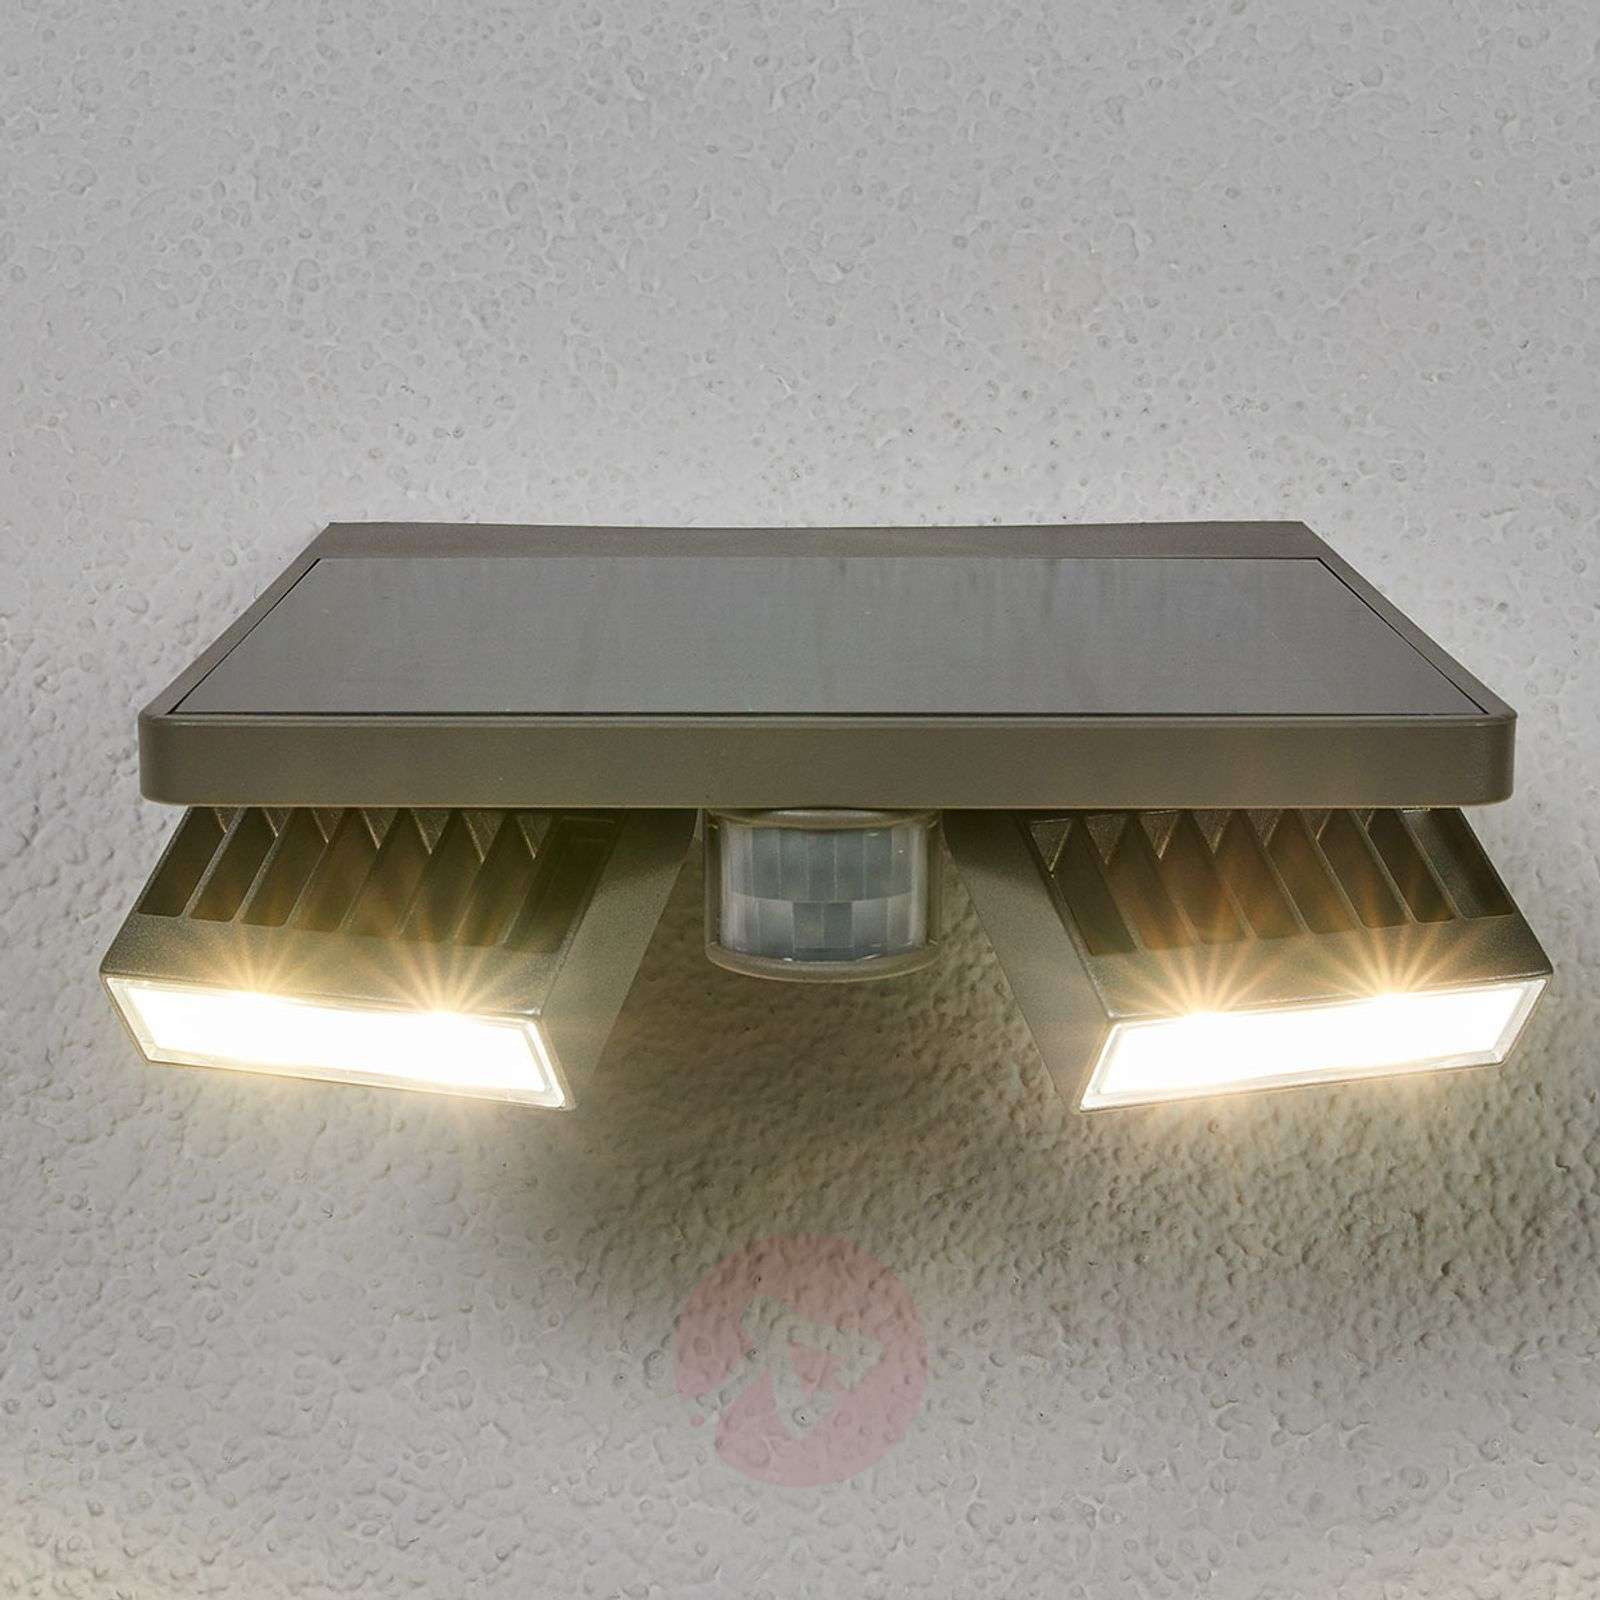 ghost solar led exterior wall light with md lights co uk